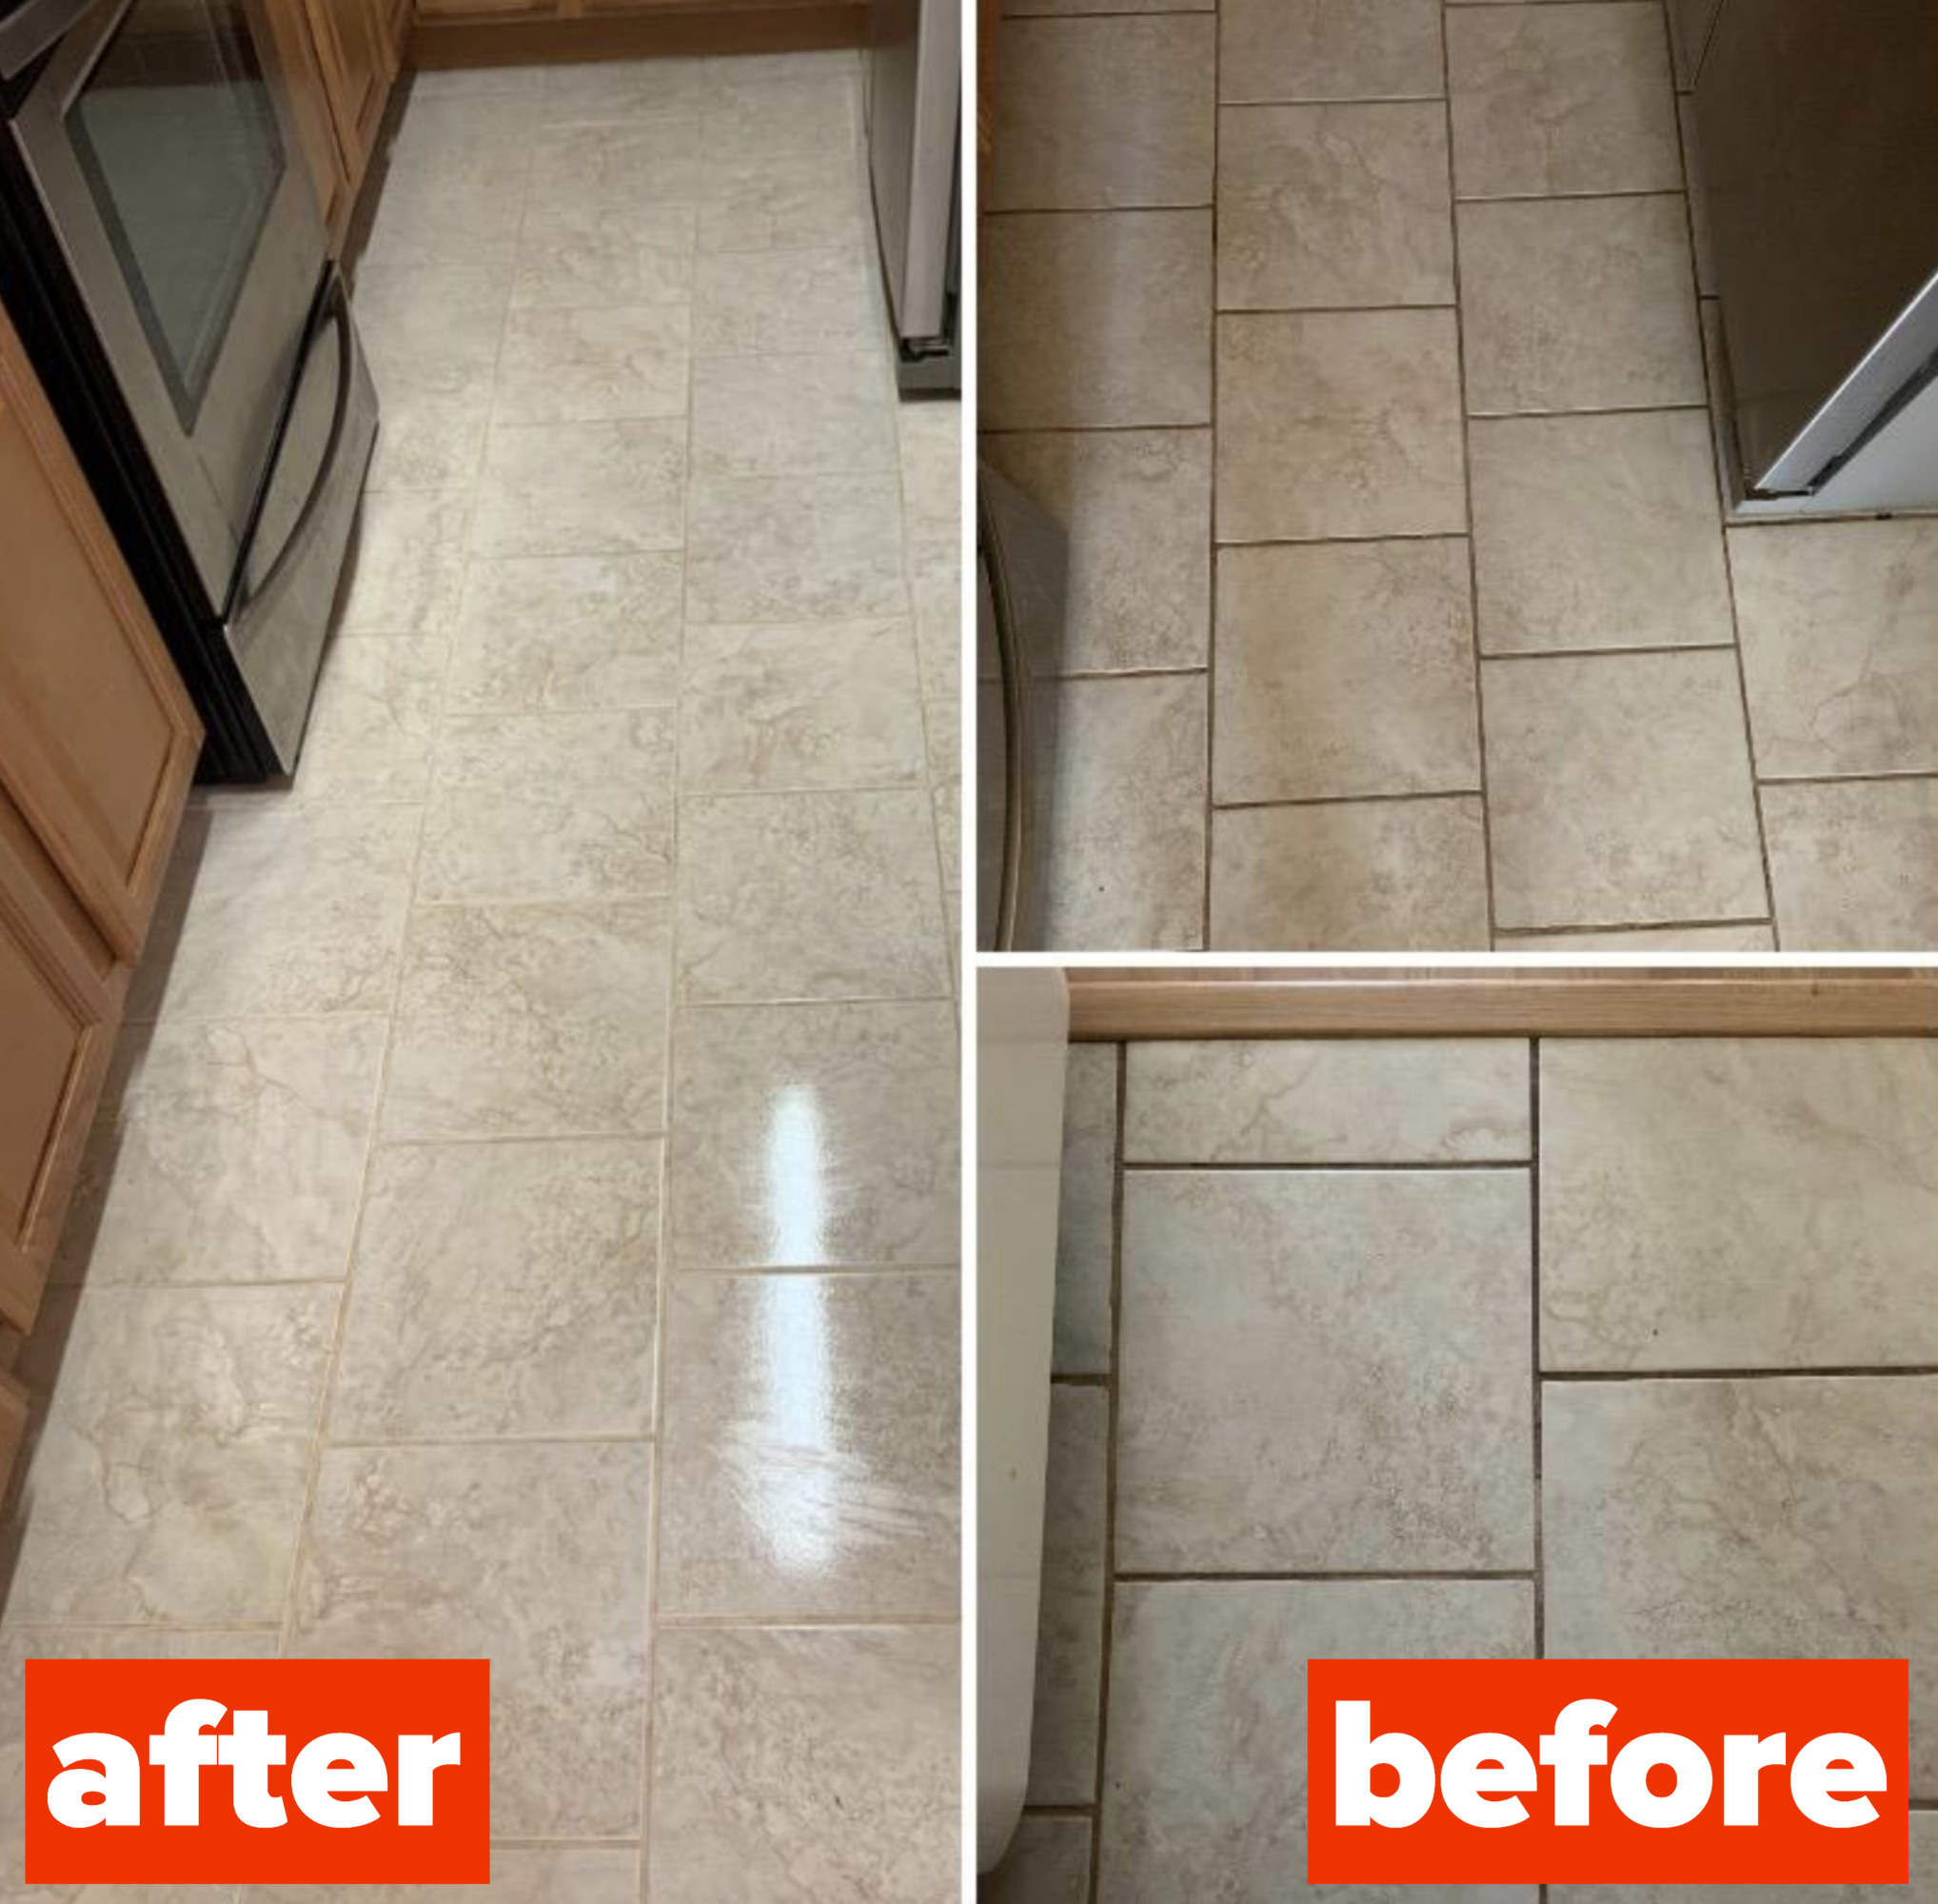 on the right, a reviewer's tile floors looking dirty from grout, and on the left, the same tile floors now looking practically brand new